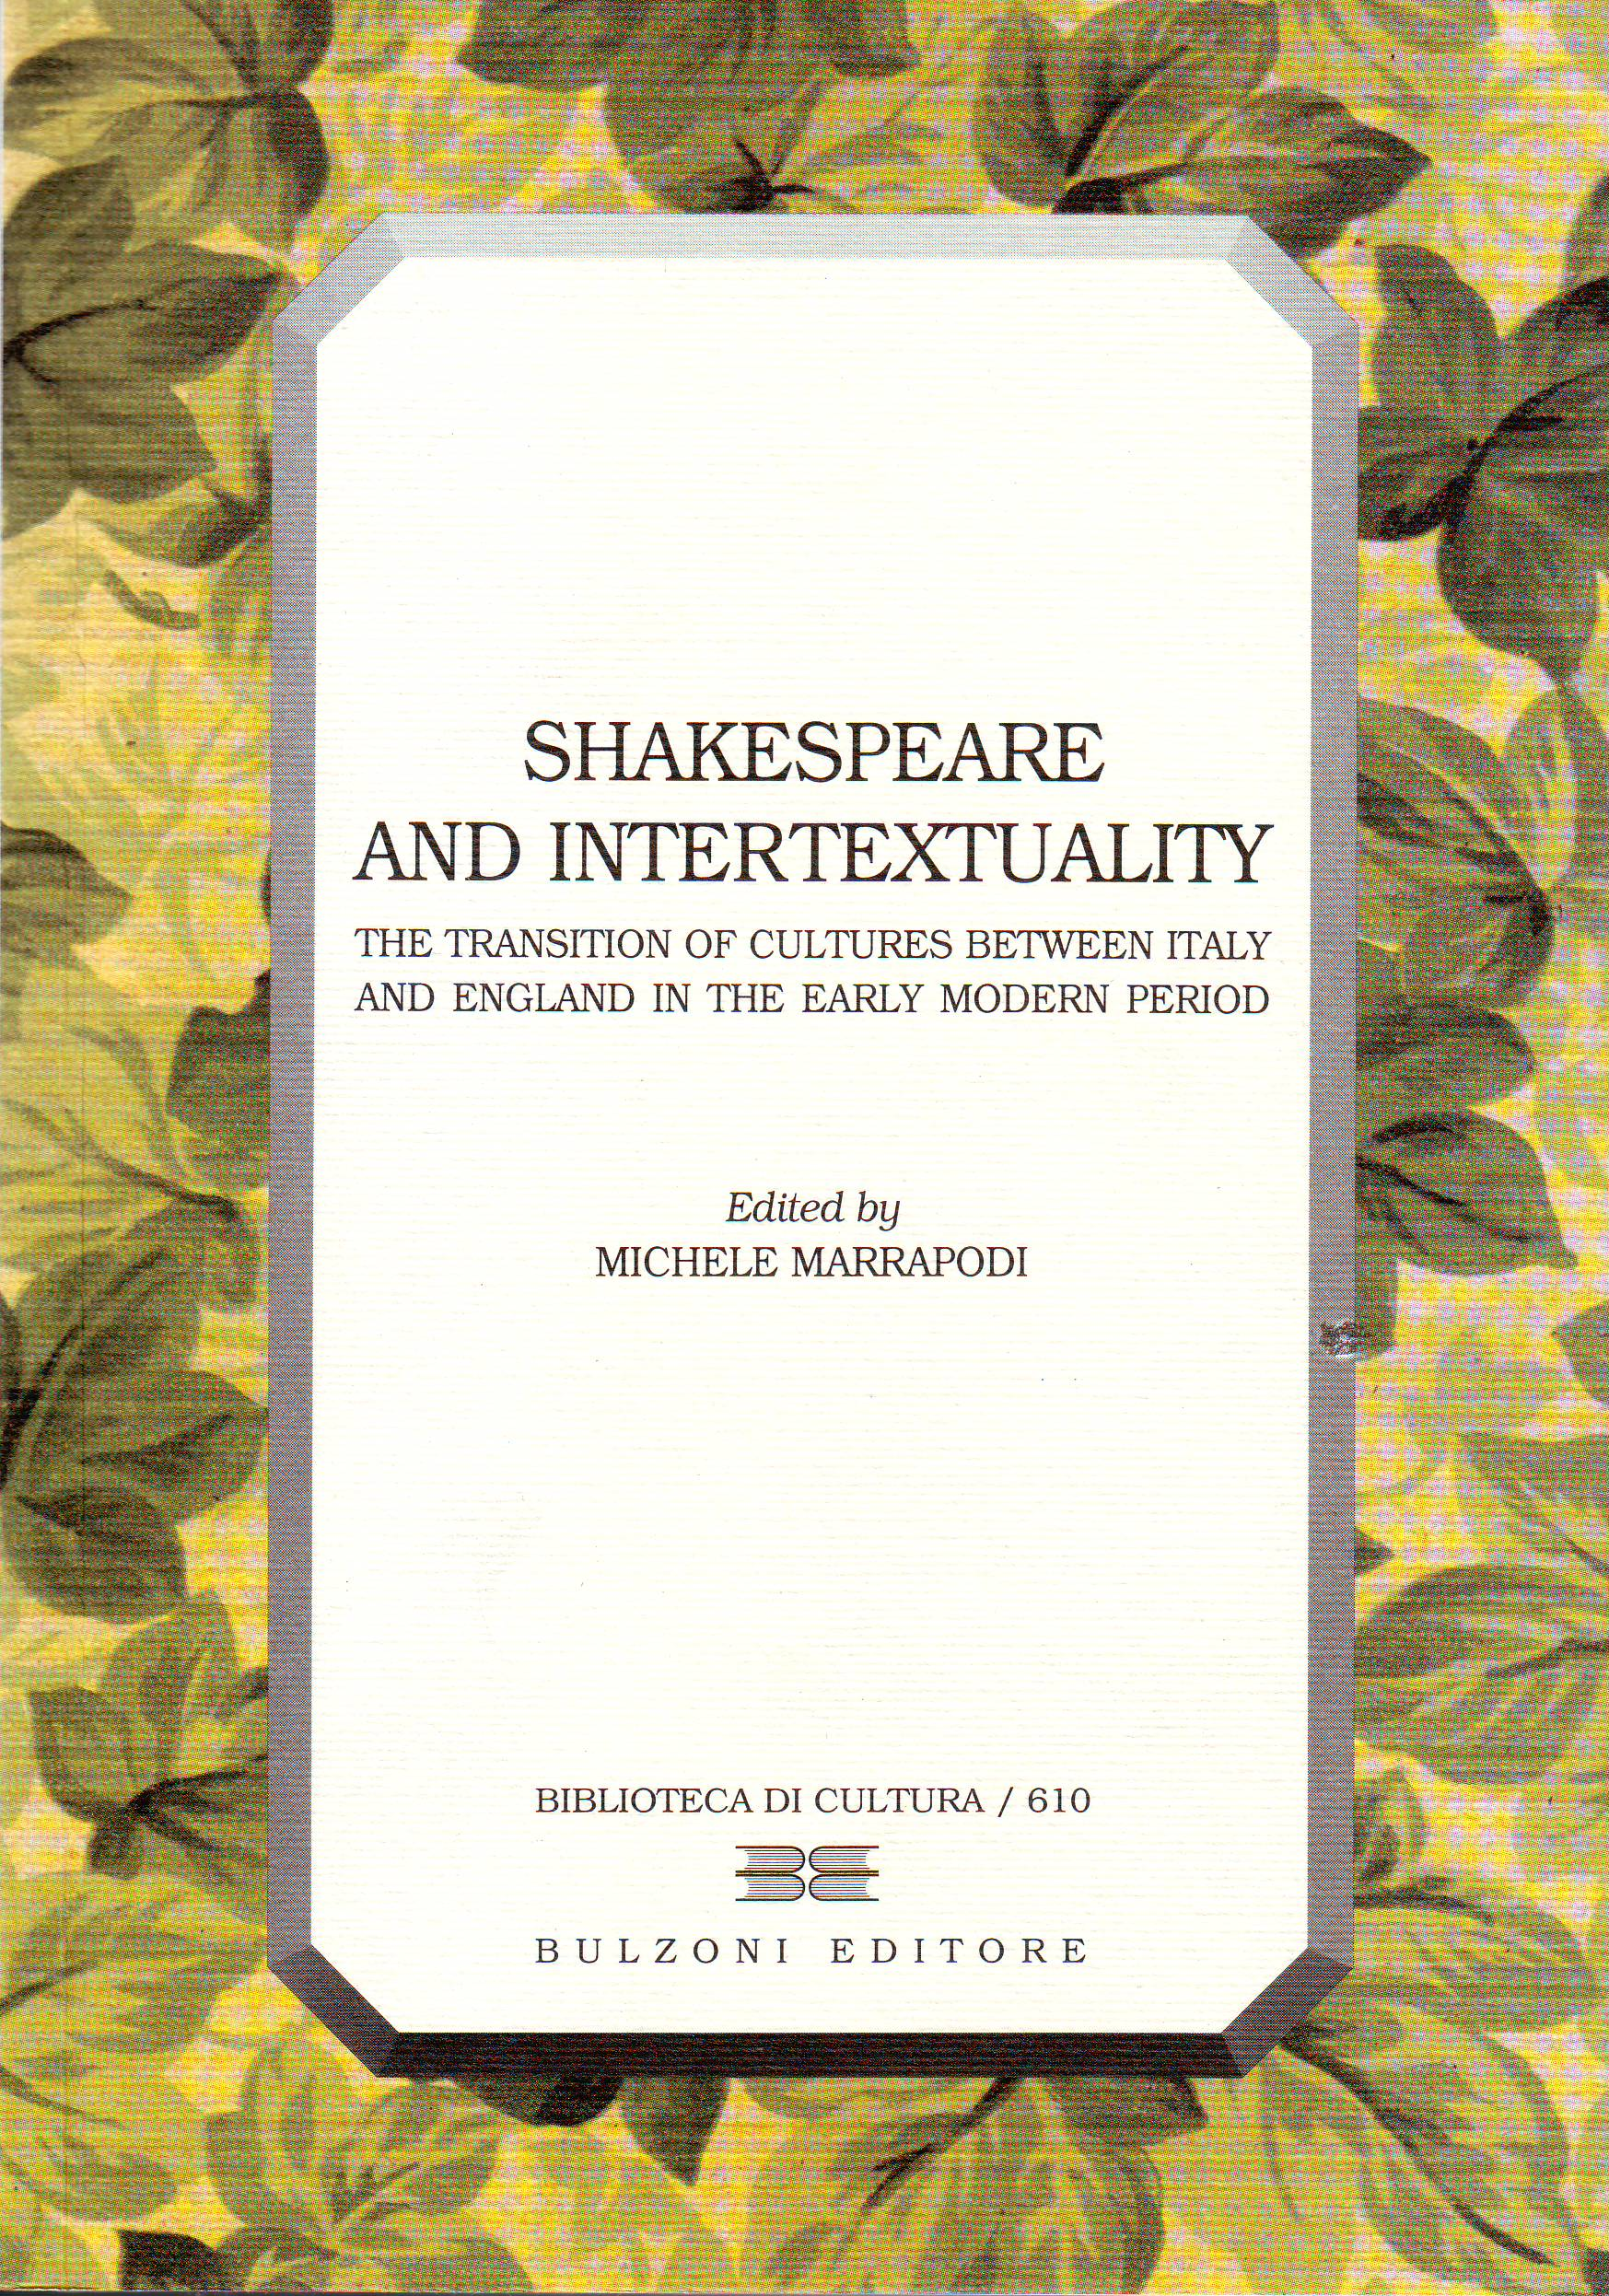 Shakespeare and intertextuality